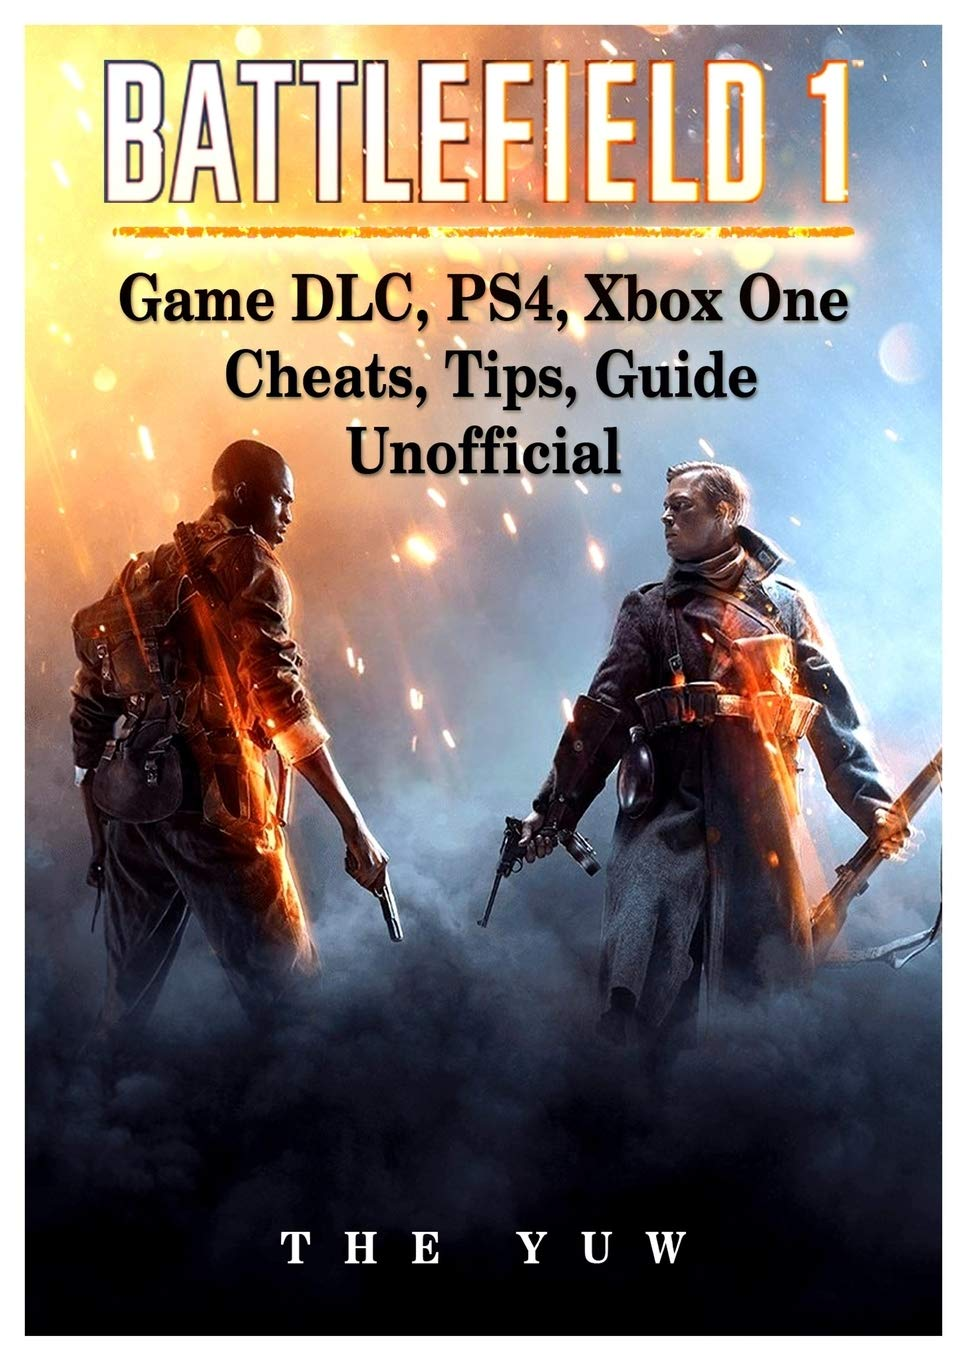 Battlefield 1 Game DLC, Ps4, Xbox One Cheats, Tips, Guide Unofficial: Amazon.es: Yuw, The: Libros en idiomas extranjeros